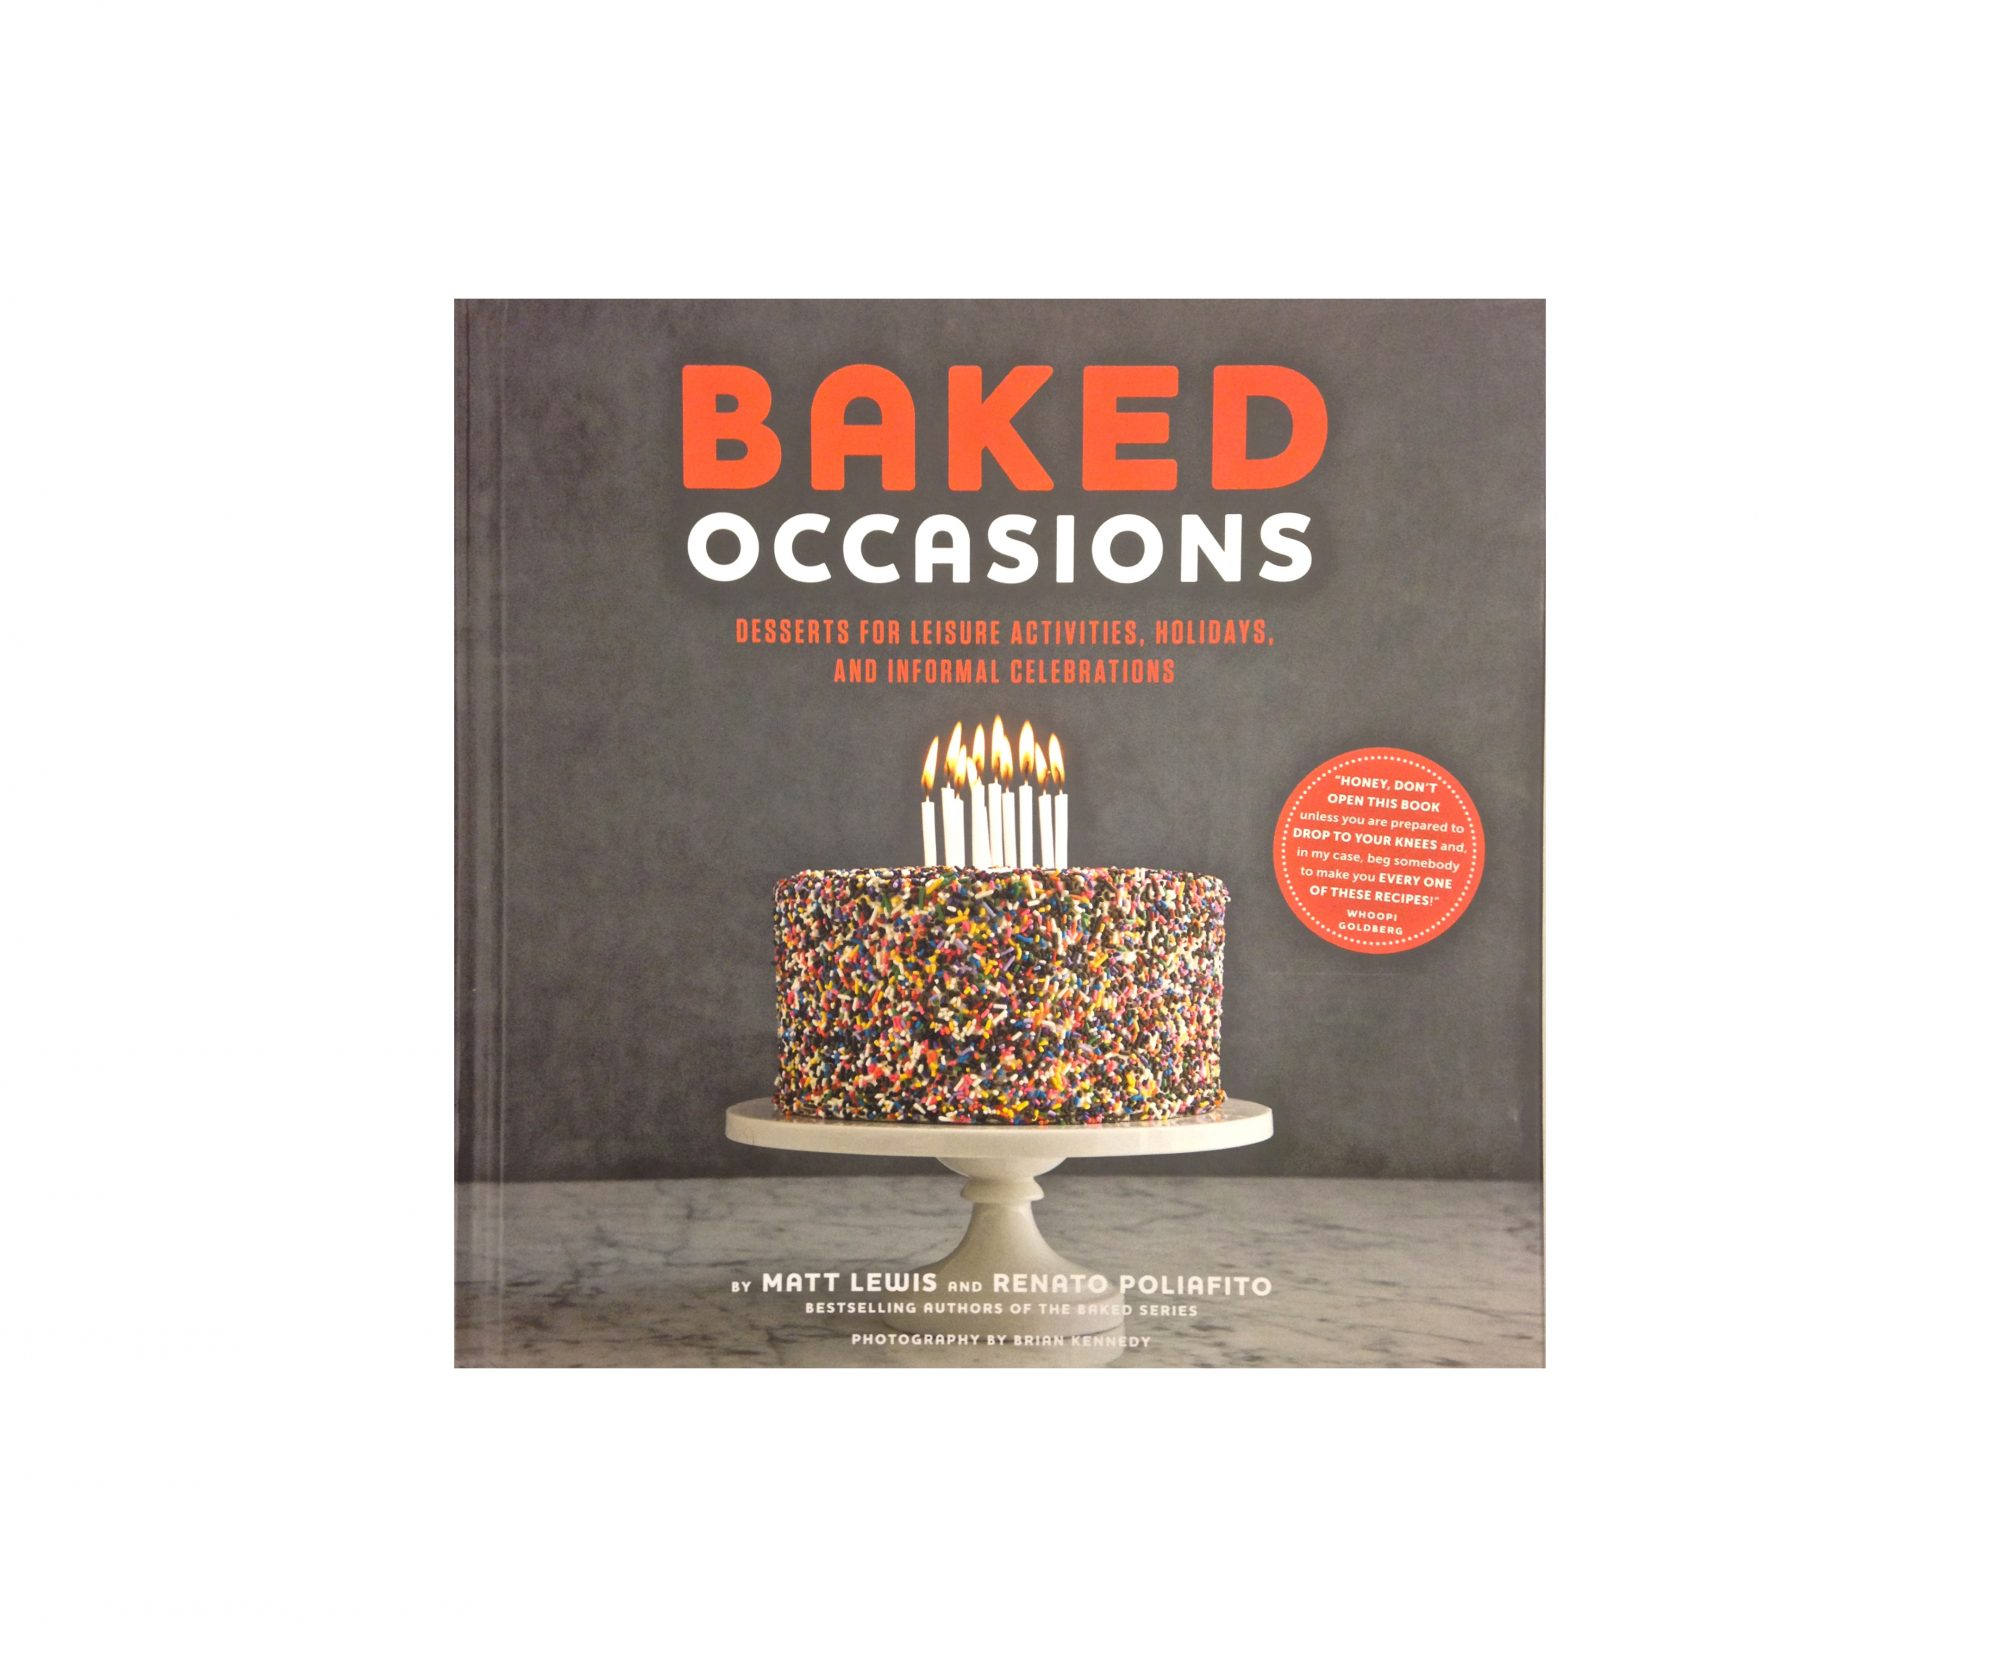 Baked Occasions: Desserts for Leisure Activities, Holidays, and Informal Celebrations by Matt Lewis and Renato Poliafito